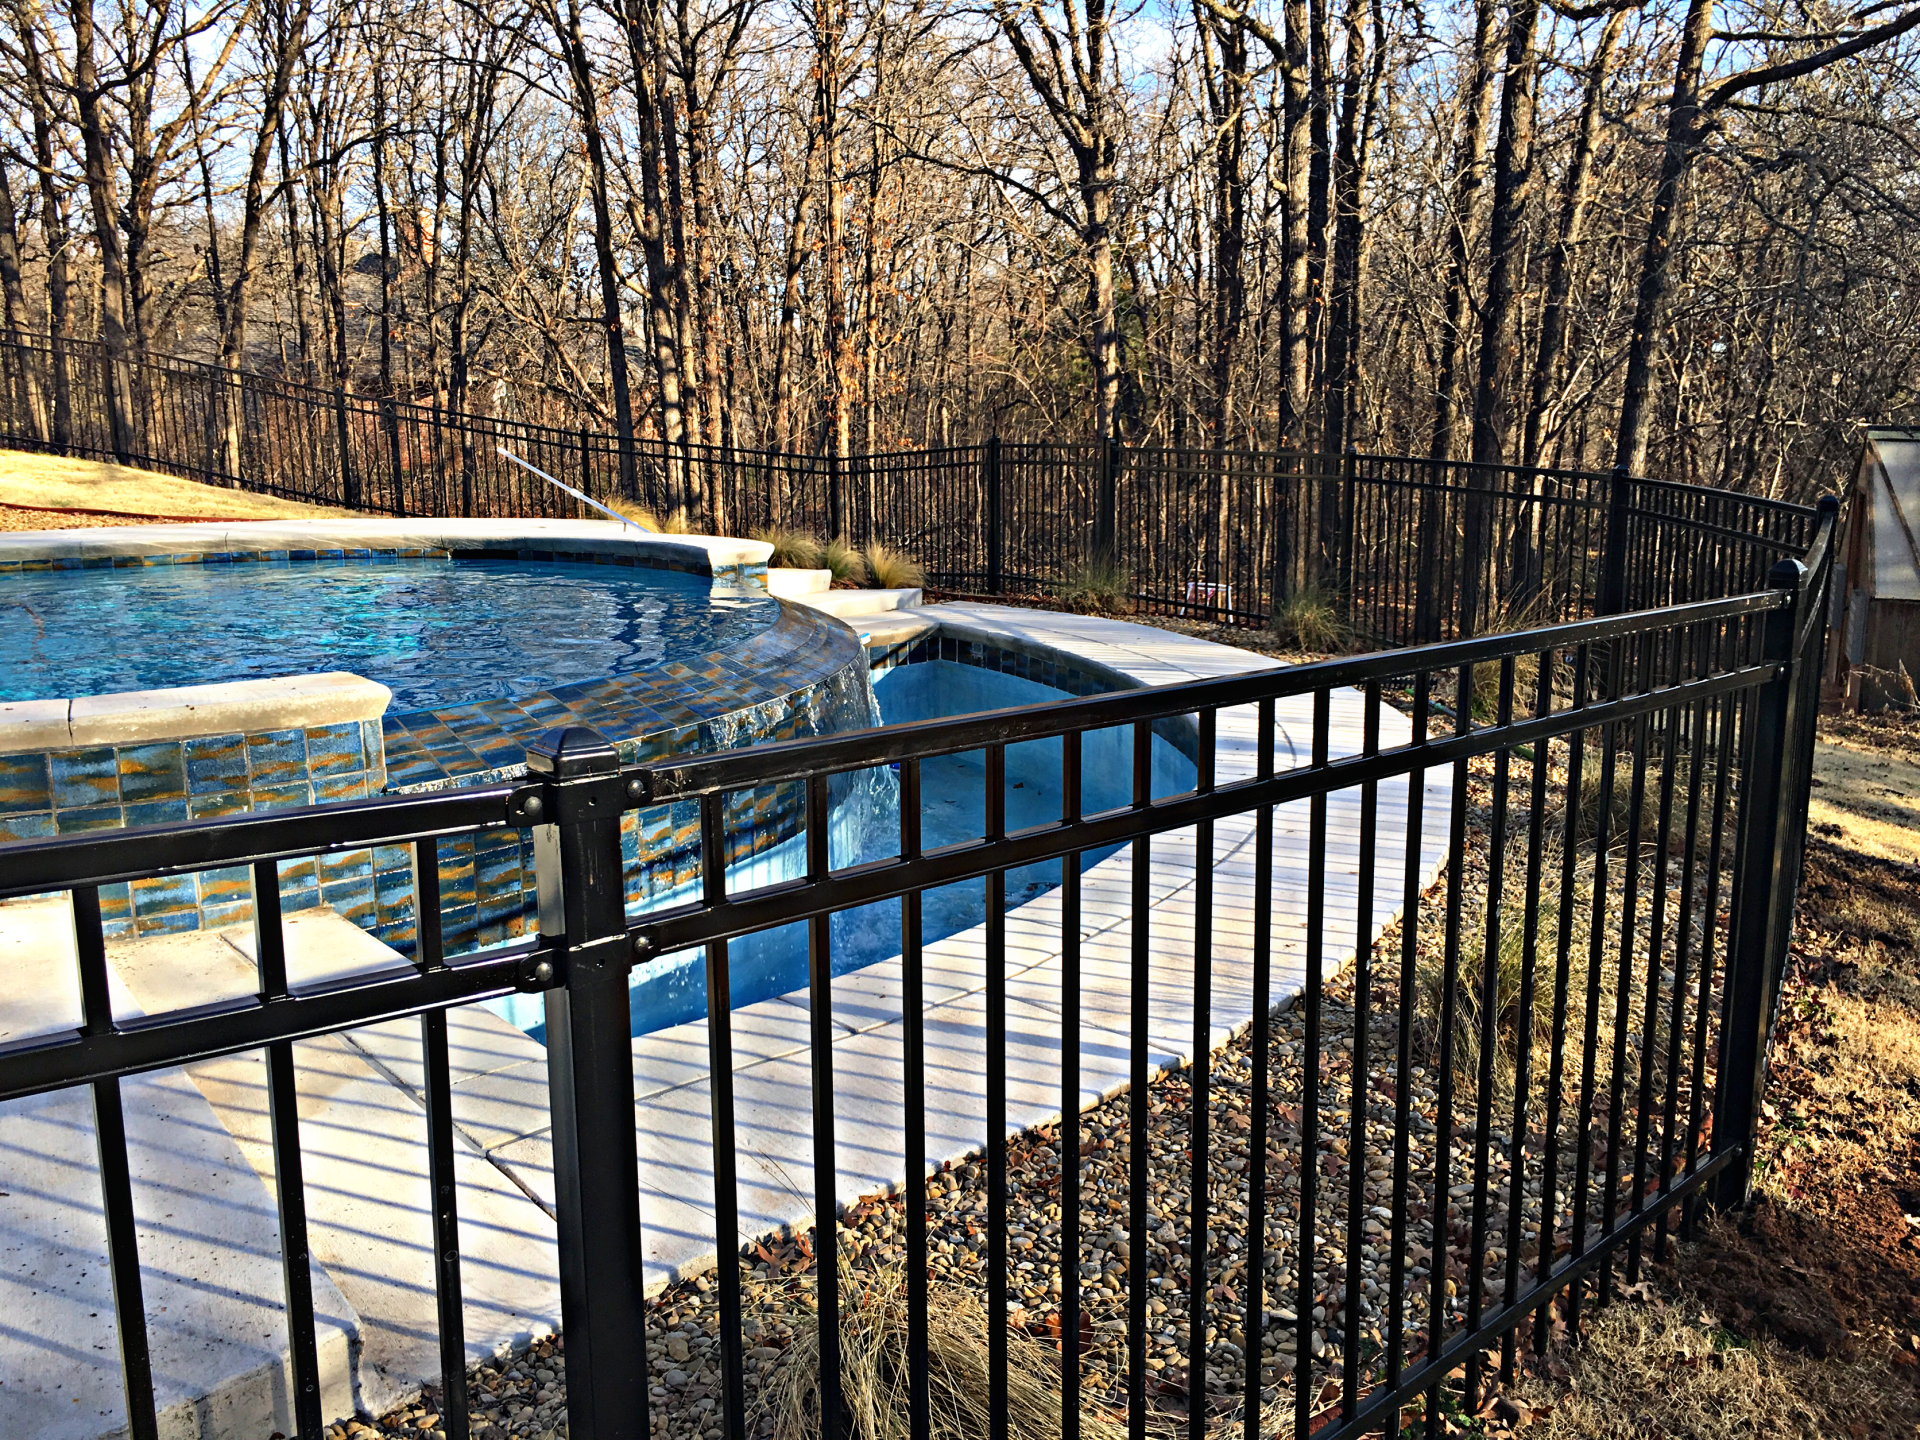 4 Foot Ameristar Iron Montage Pool Security Fence Edmond Oklahoma Fence Gate Company